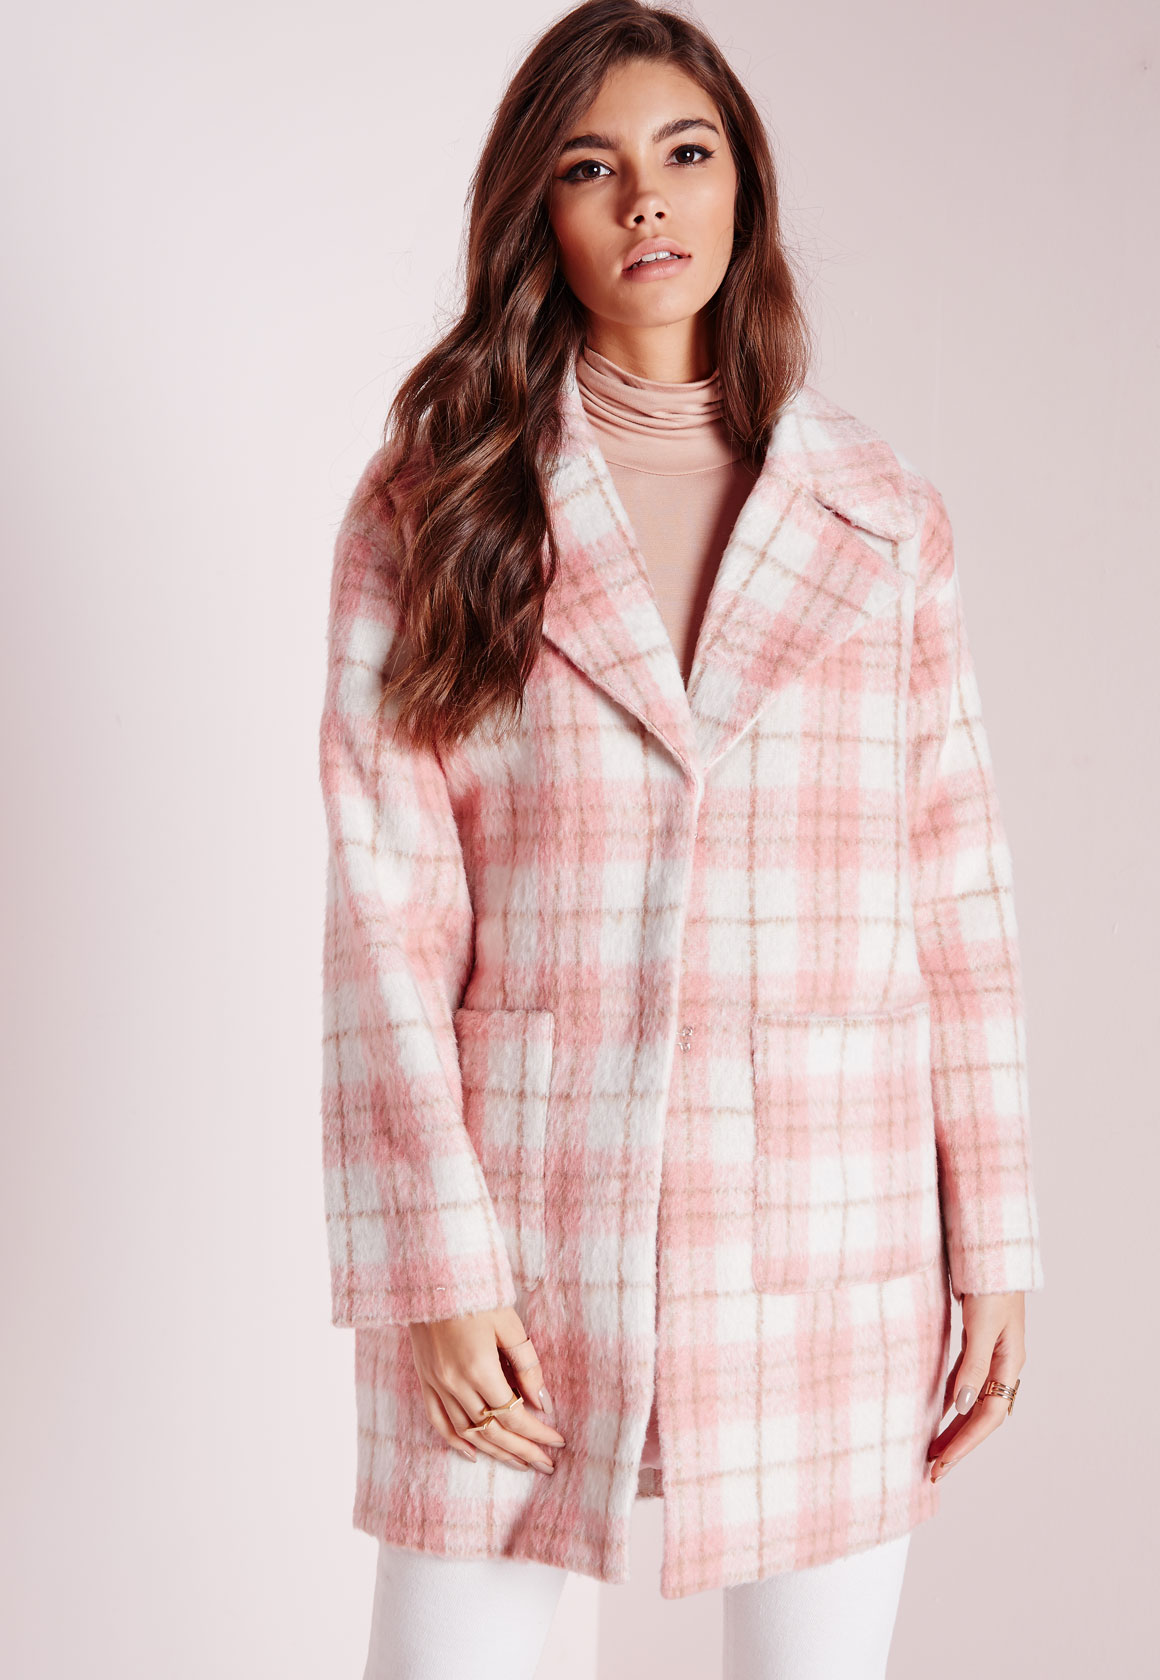 Fashion Shop - Oversized Cocoon Coat Pink Check